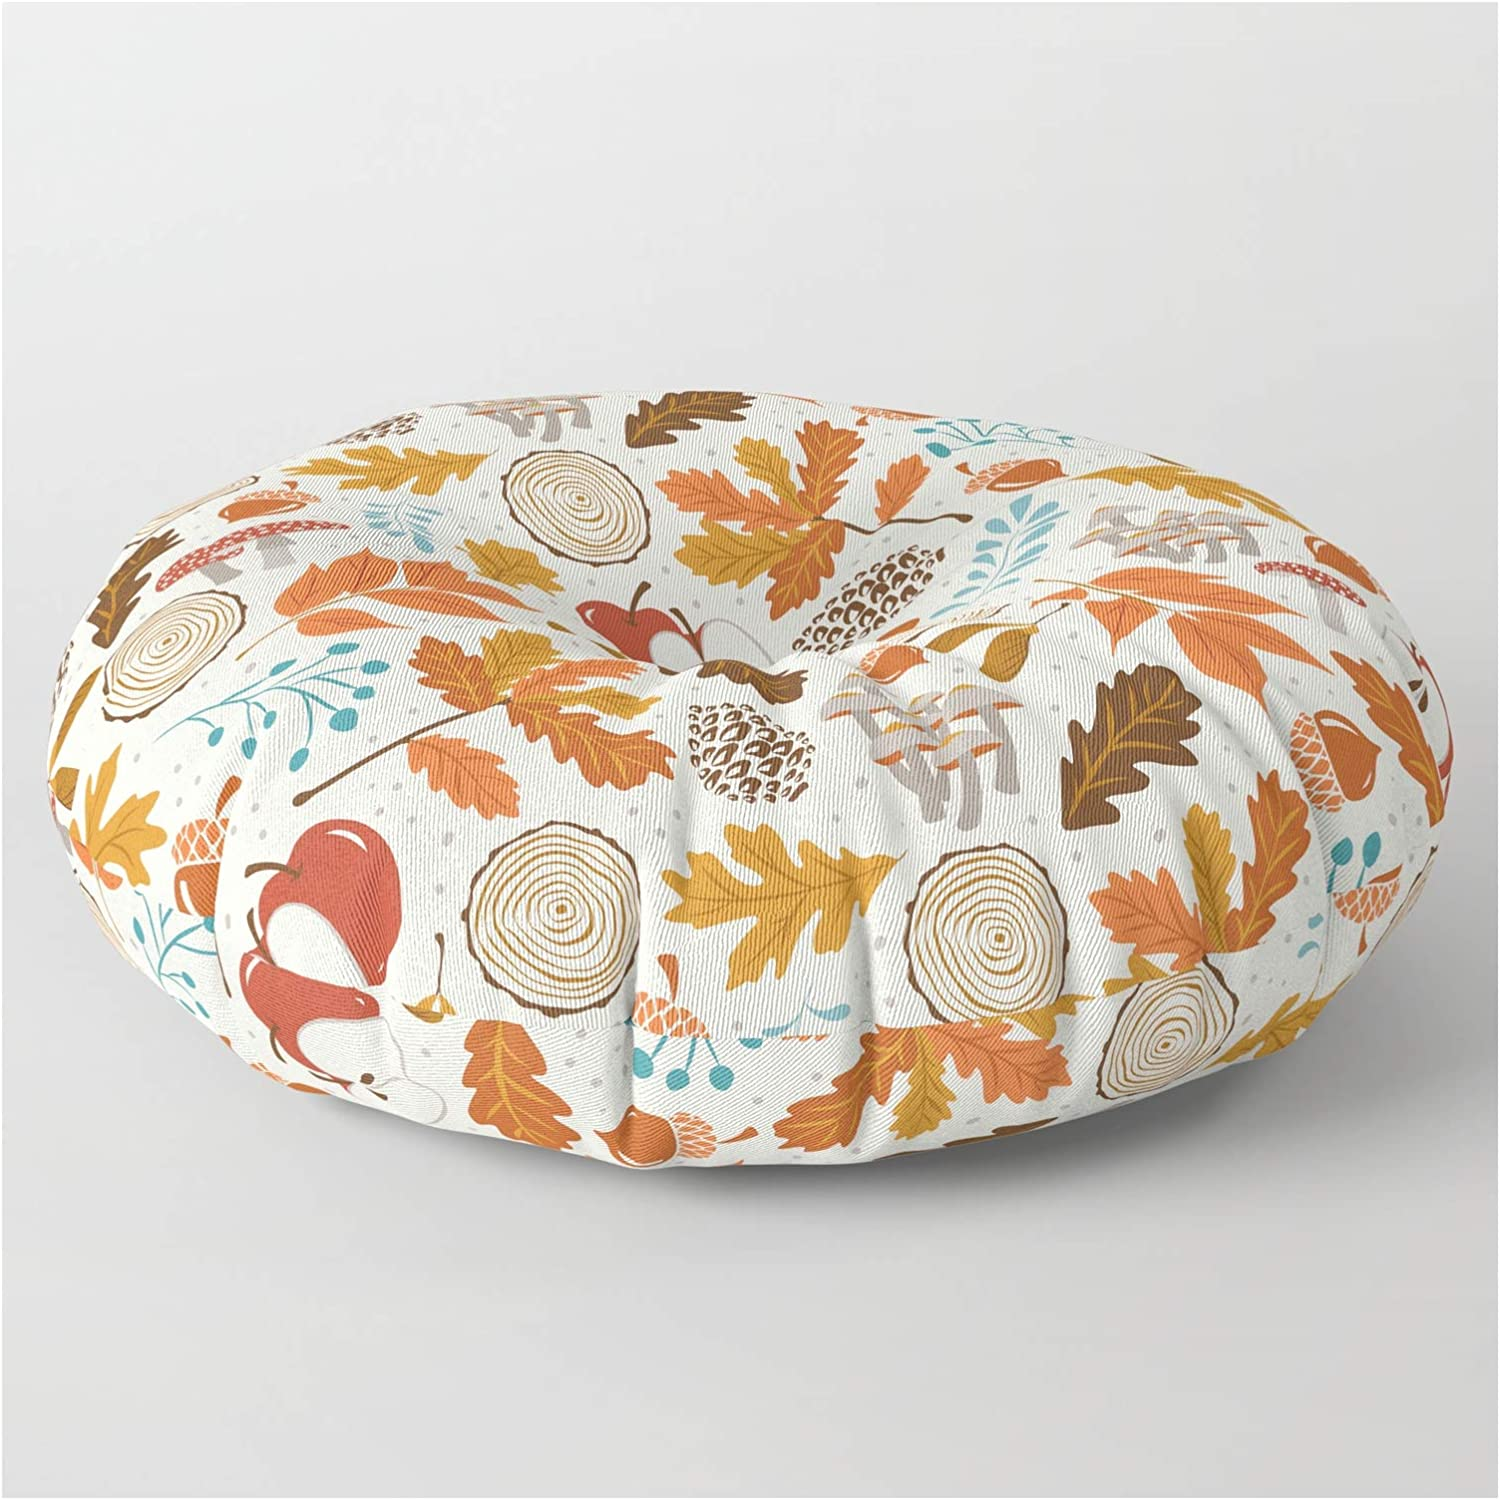 Society6 Autumn Woods by Trust New product! New type Heather Dutton Floor Round Pillow on -